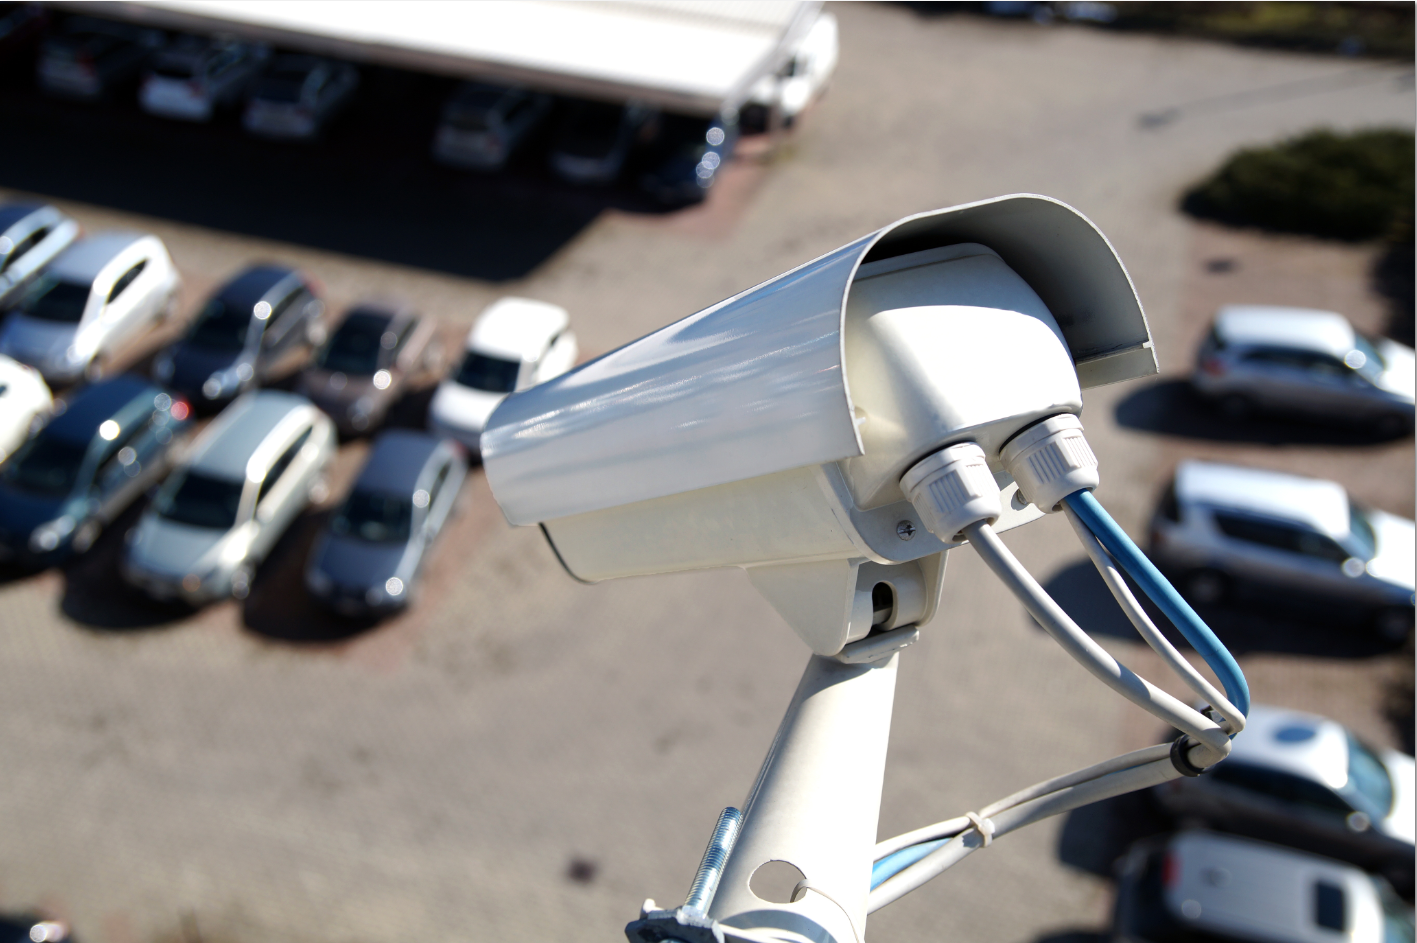 Security Camera Repair in Rancho Cucamonga